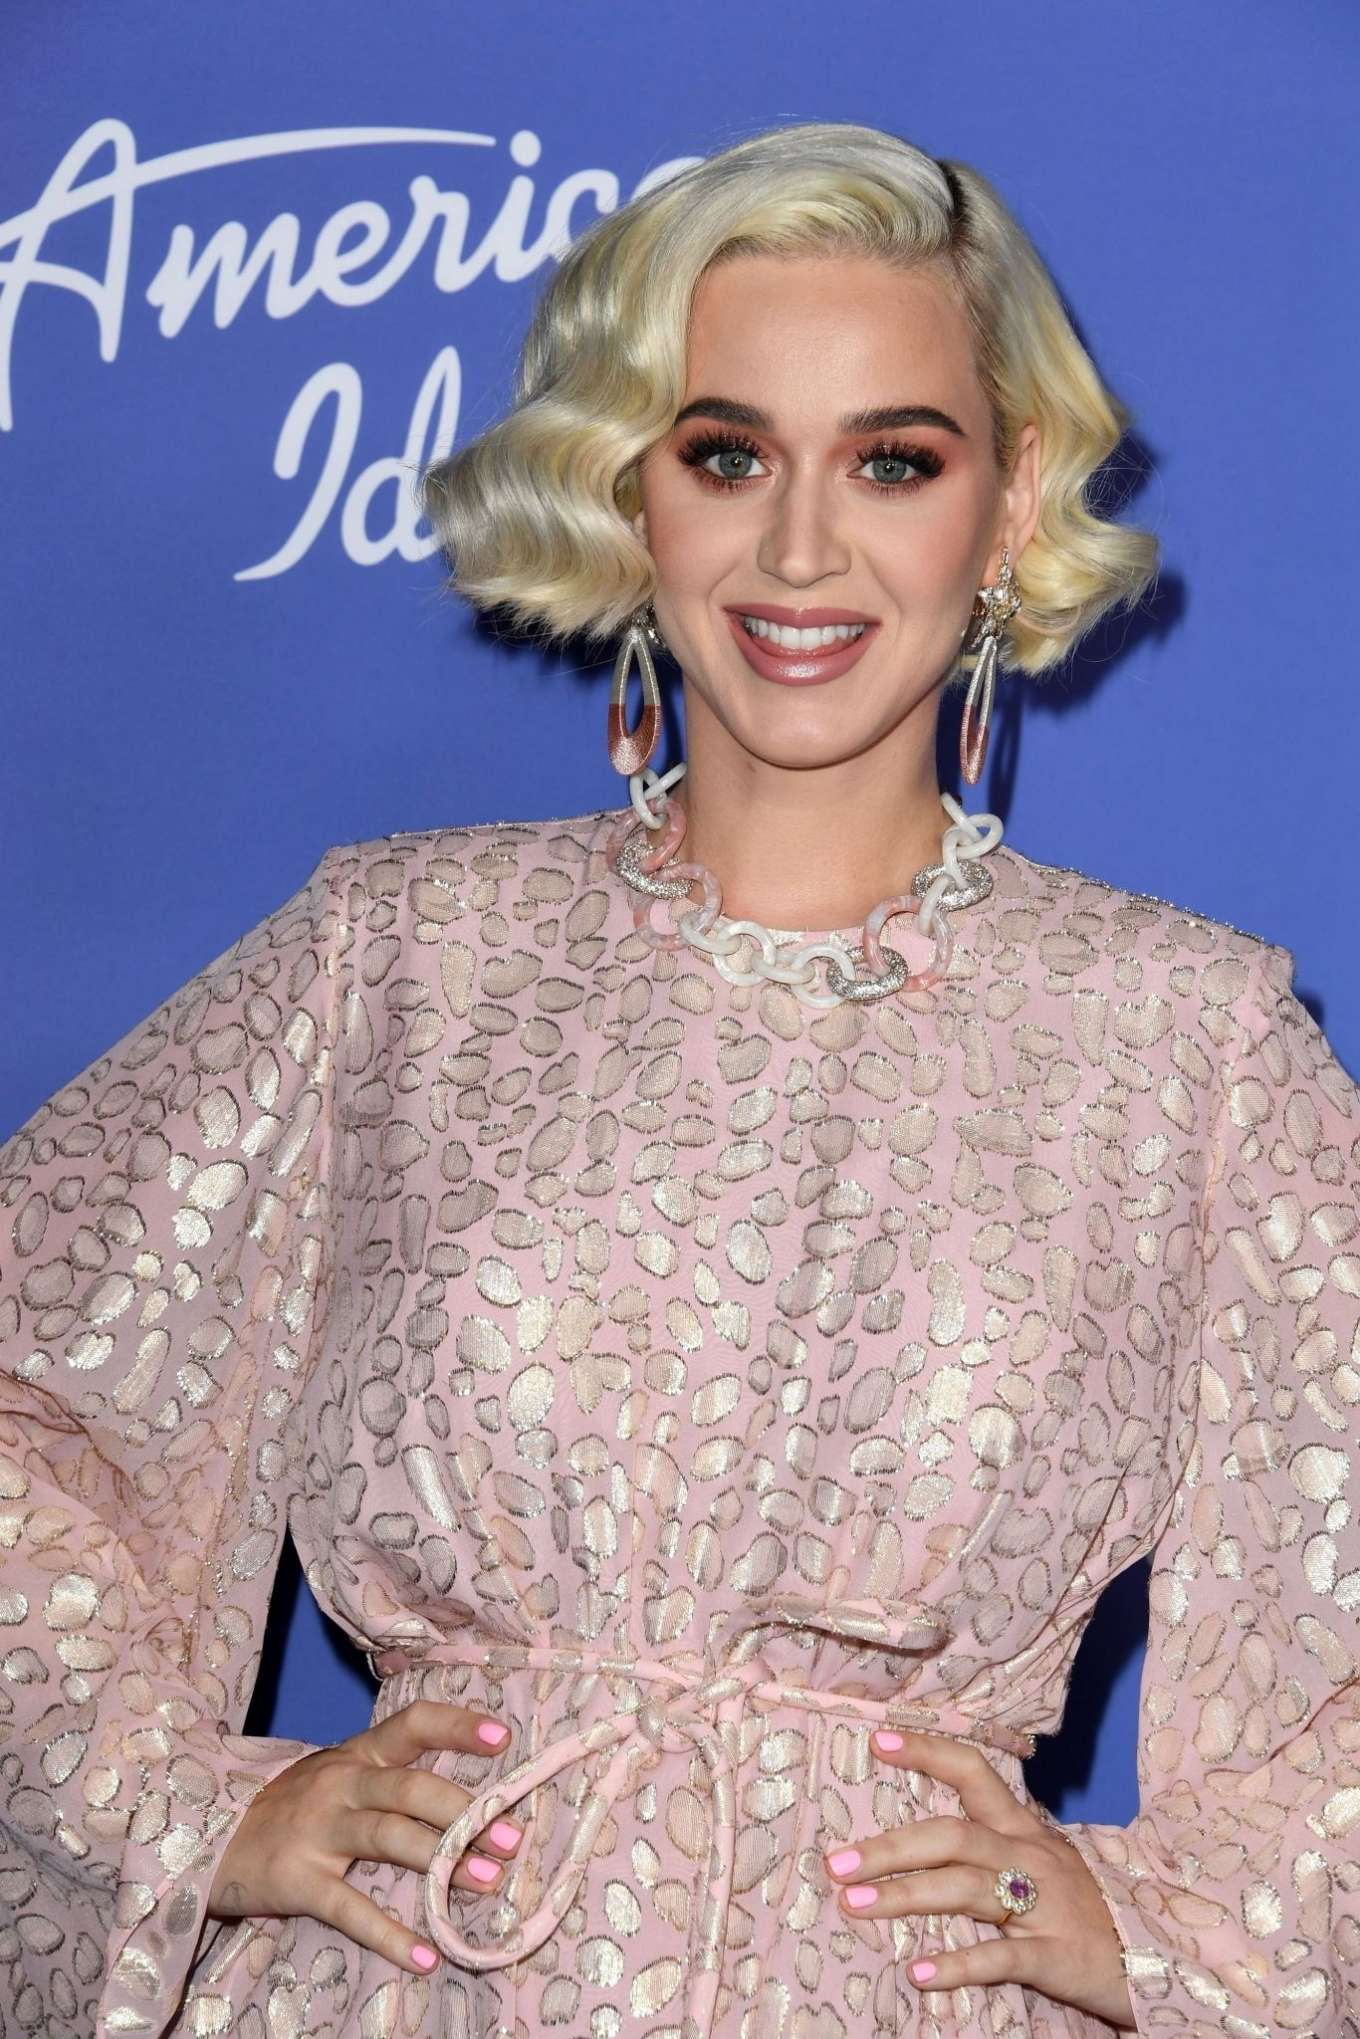 Katy Perry 2020 : Katy Perry – premiere event for new American Idol season in Hollywood-06